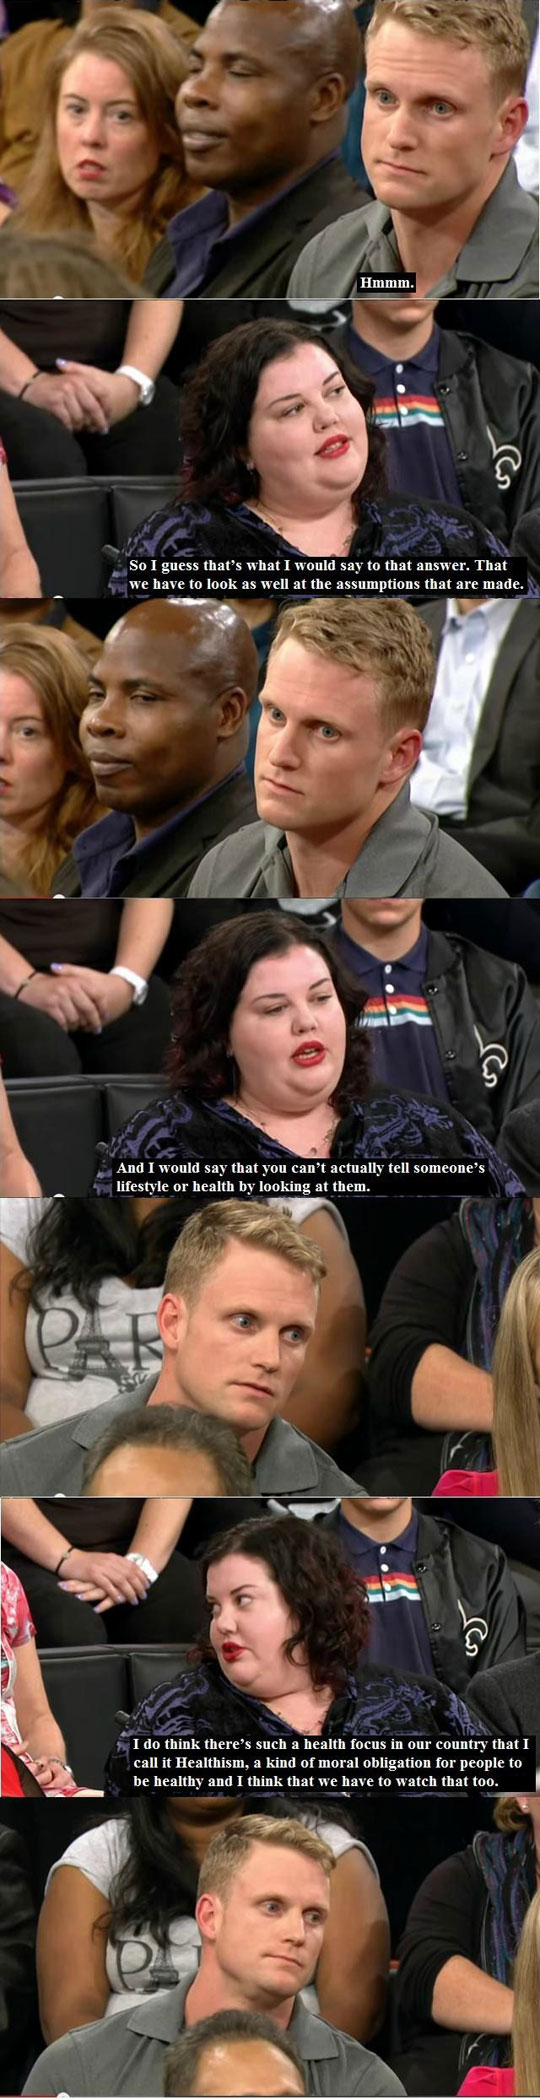 funny-fat-girl-TV-show-fitness-trainer